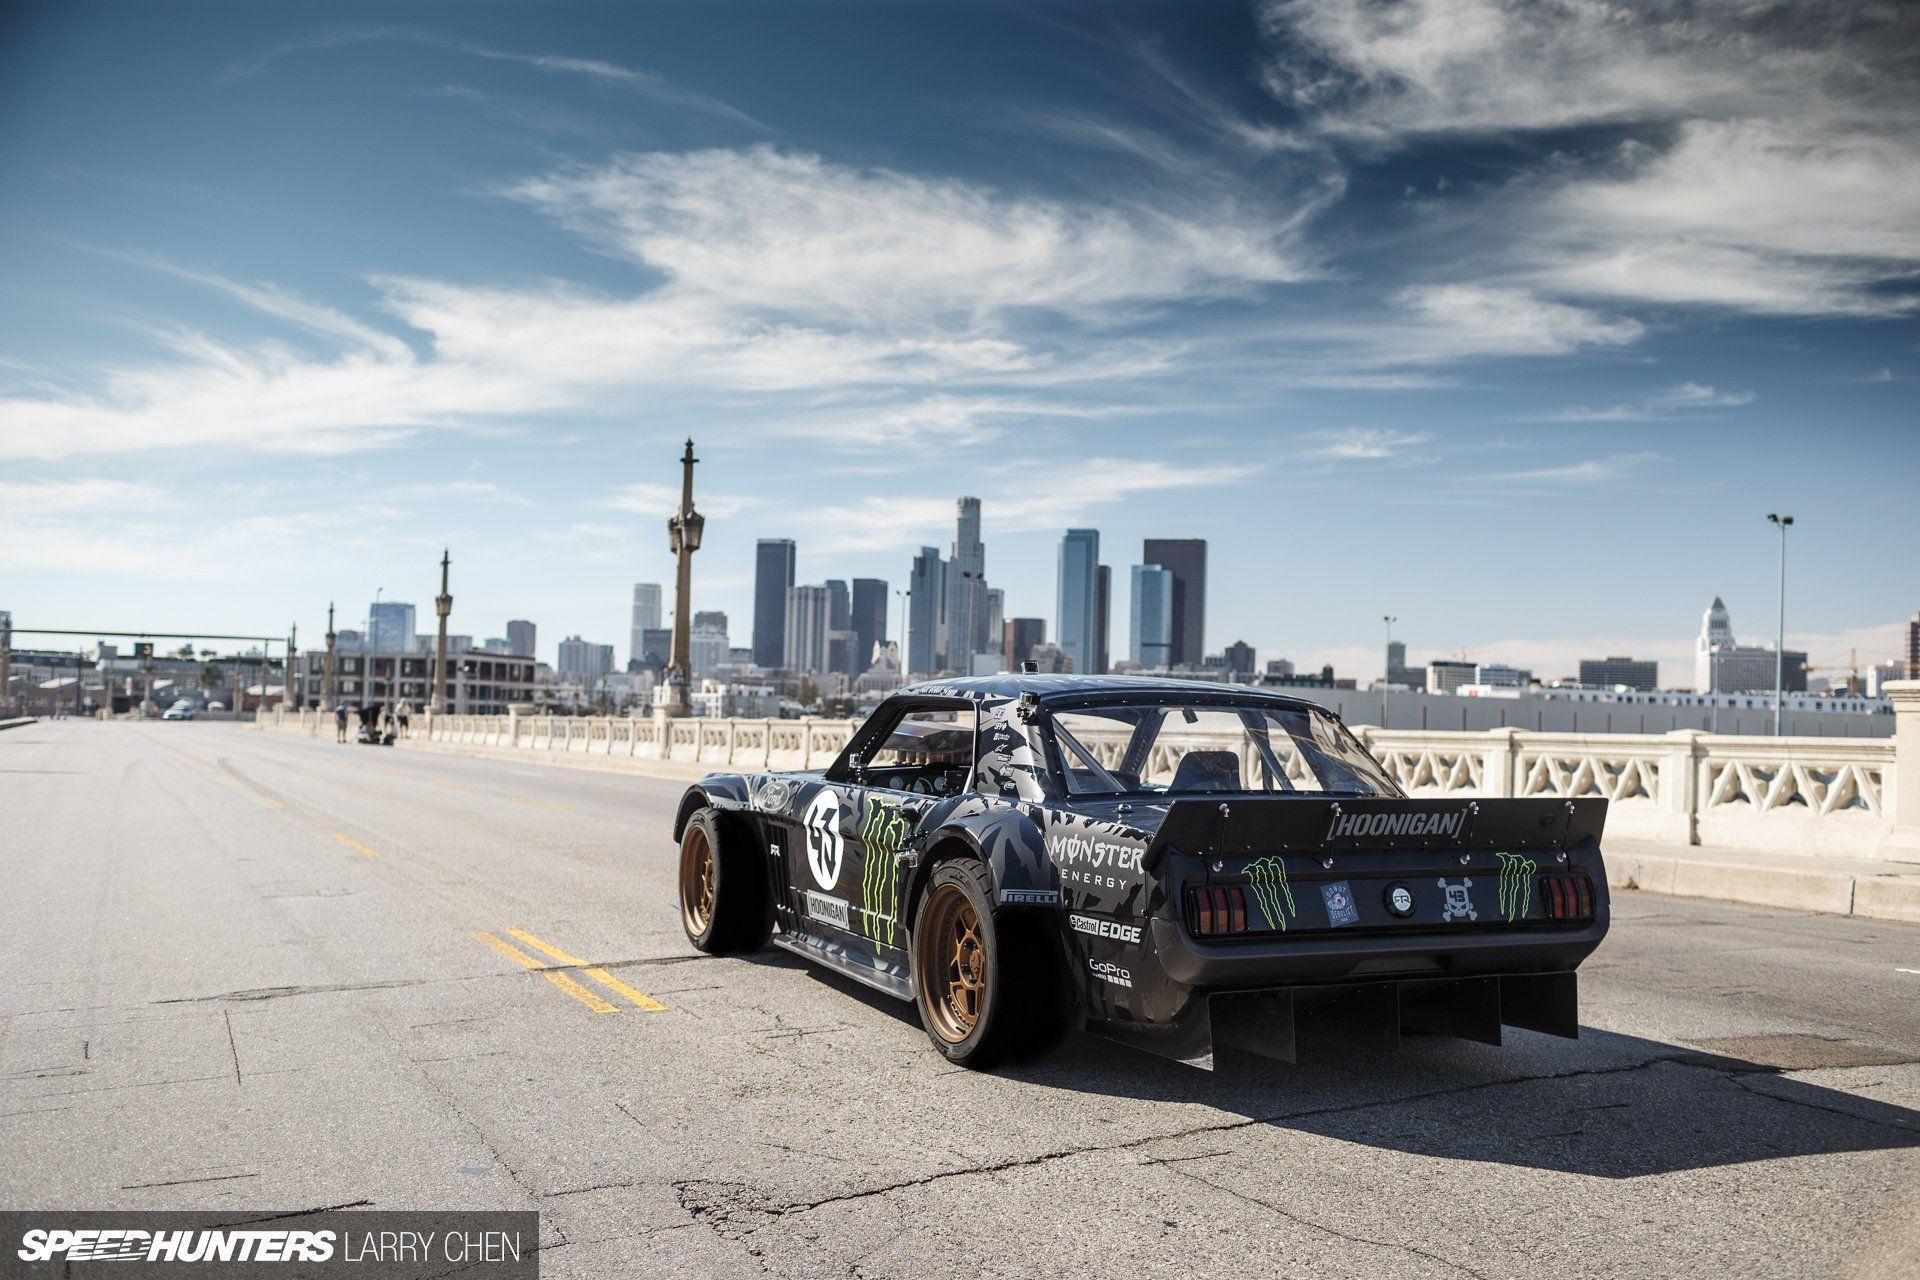 Cool Cars Drifting Wallpapers Hd Hoonigan Wallpapers Wallpaper Cave